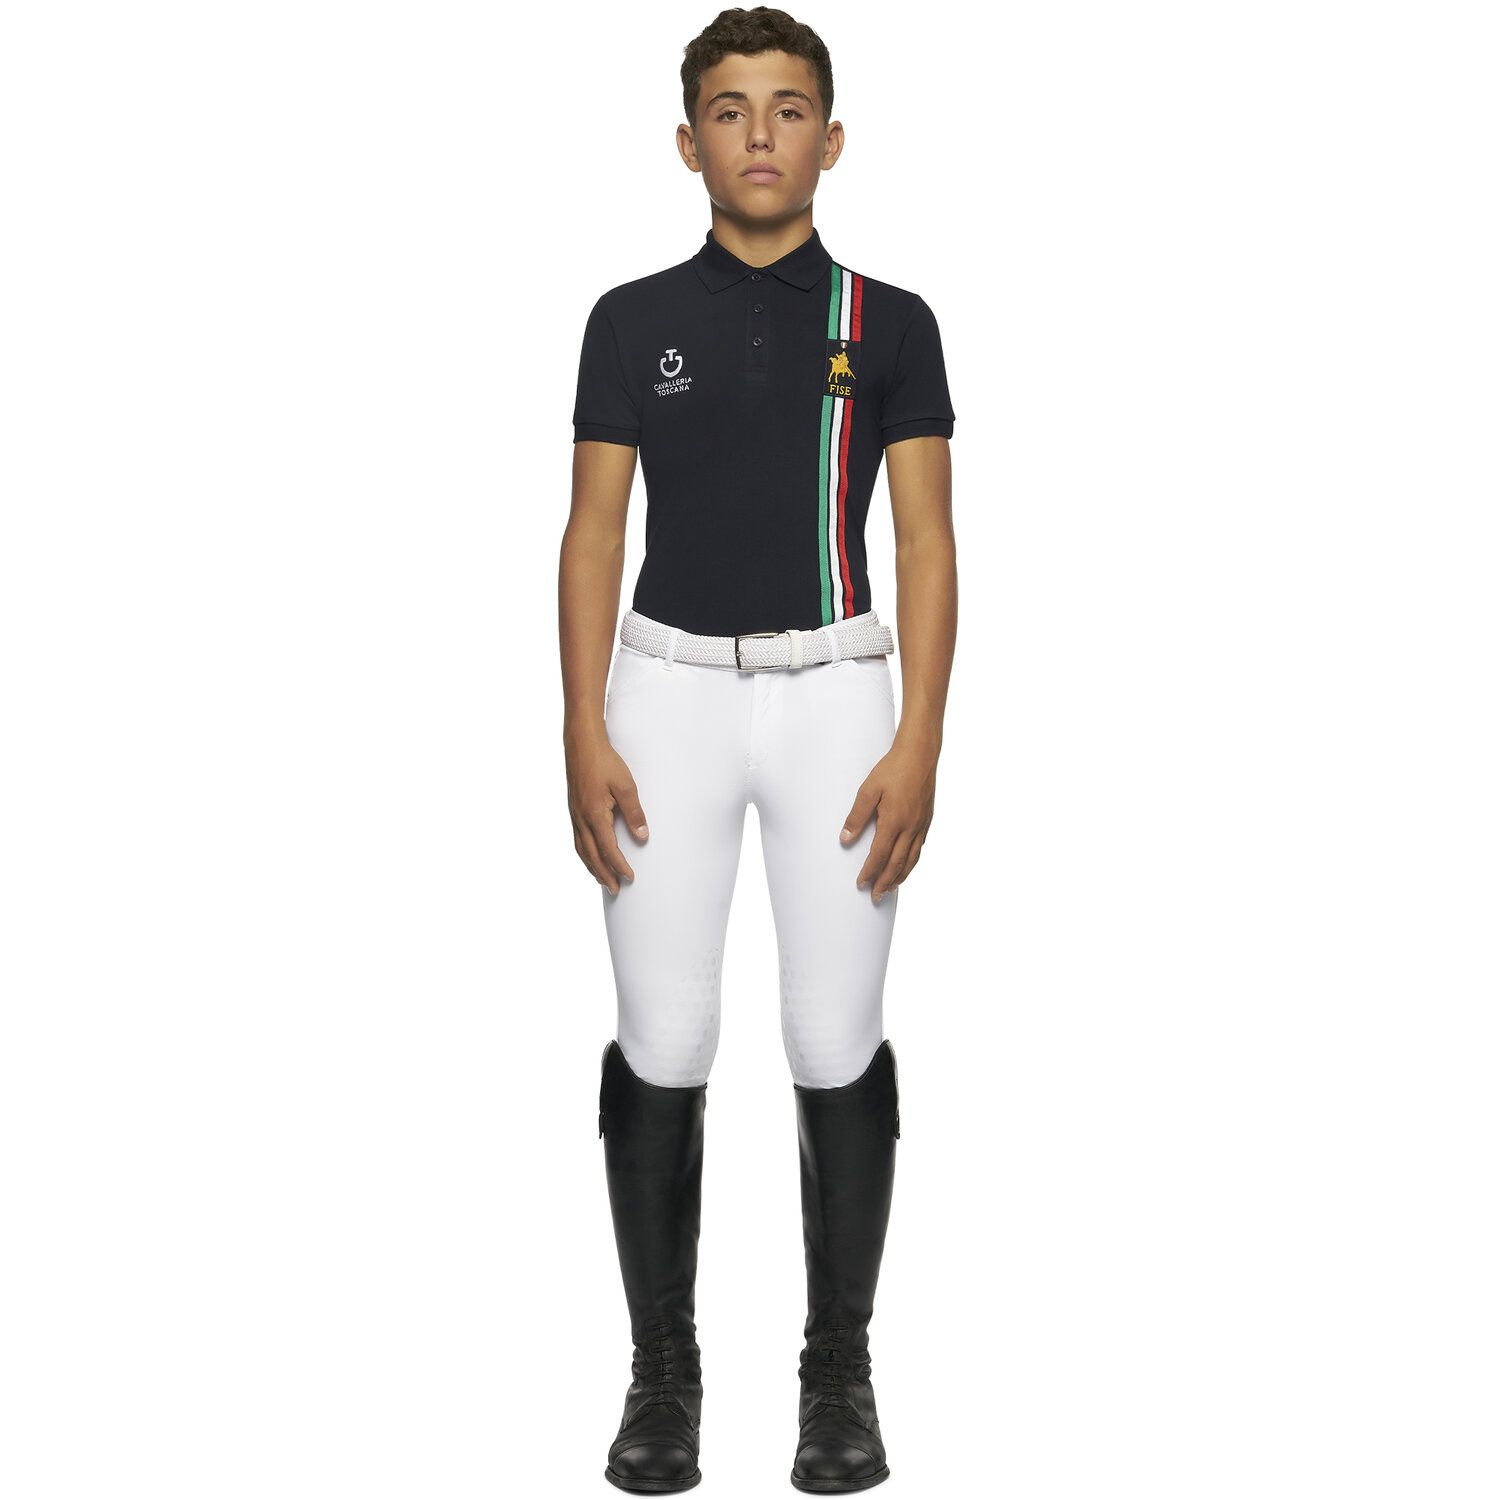 FISE short sleeved training Polo for boys